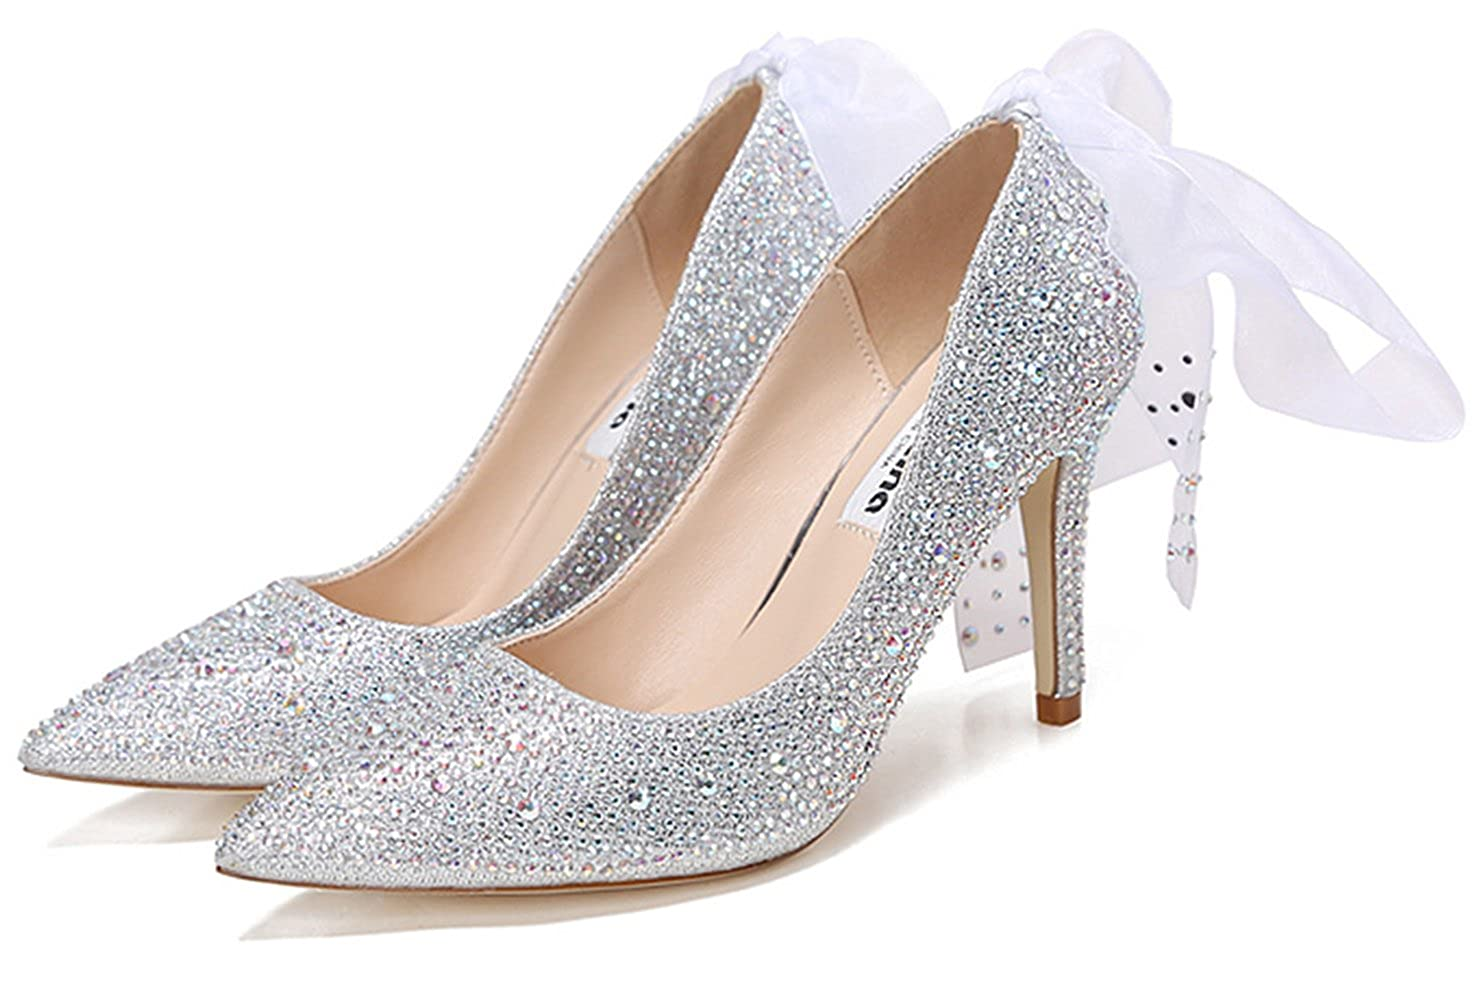 Glass Wedding Princess Rhinestones Slipper Shoes Naly The High Pumps Women's Heel Crystal Cinderella 0nymOP8Nvw